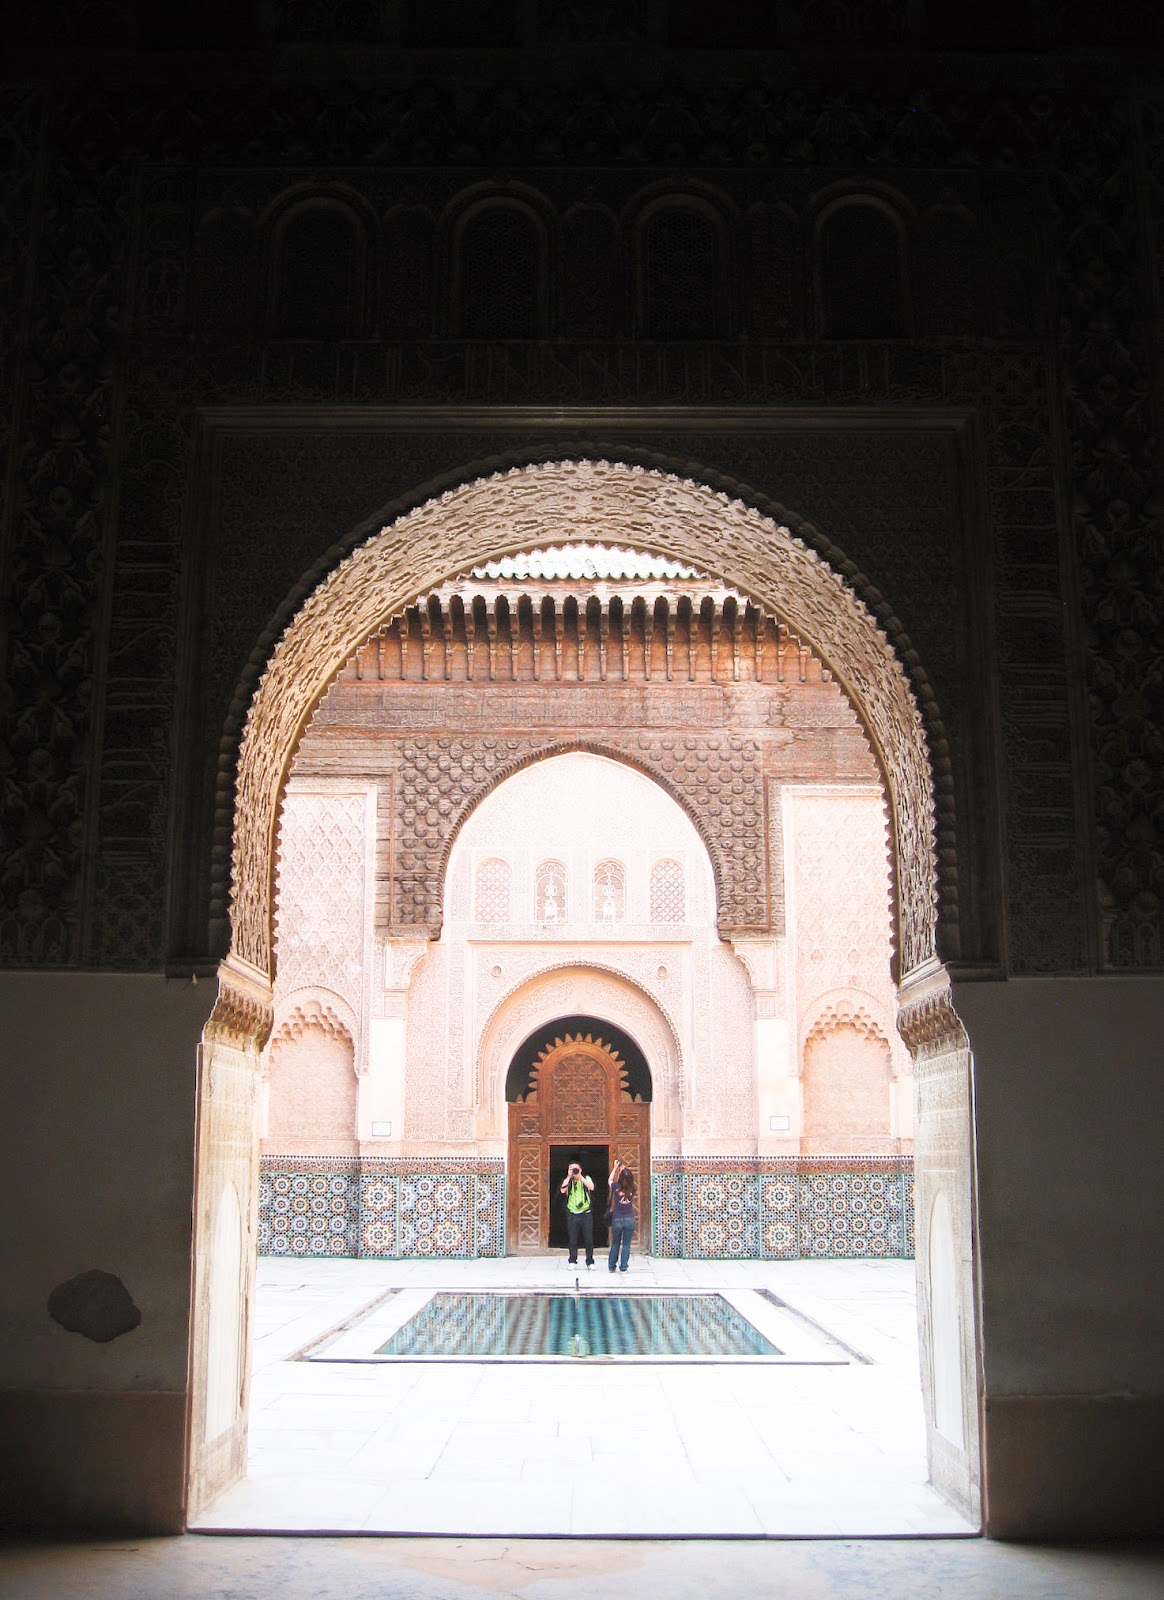 Marrakech top tourist attractions: Beautiful moorish architecture of Medersa Ben Youssef